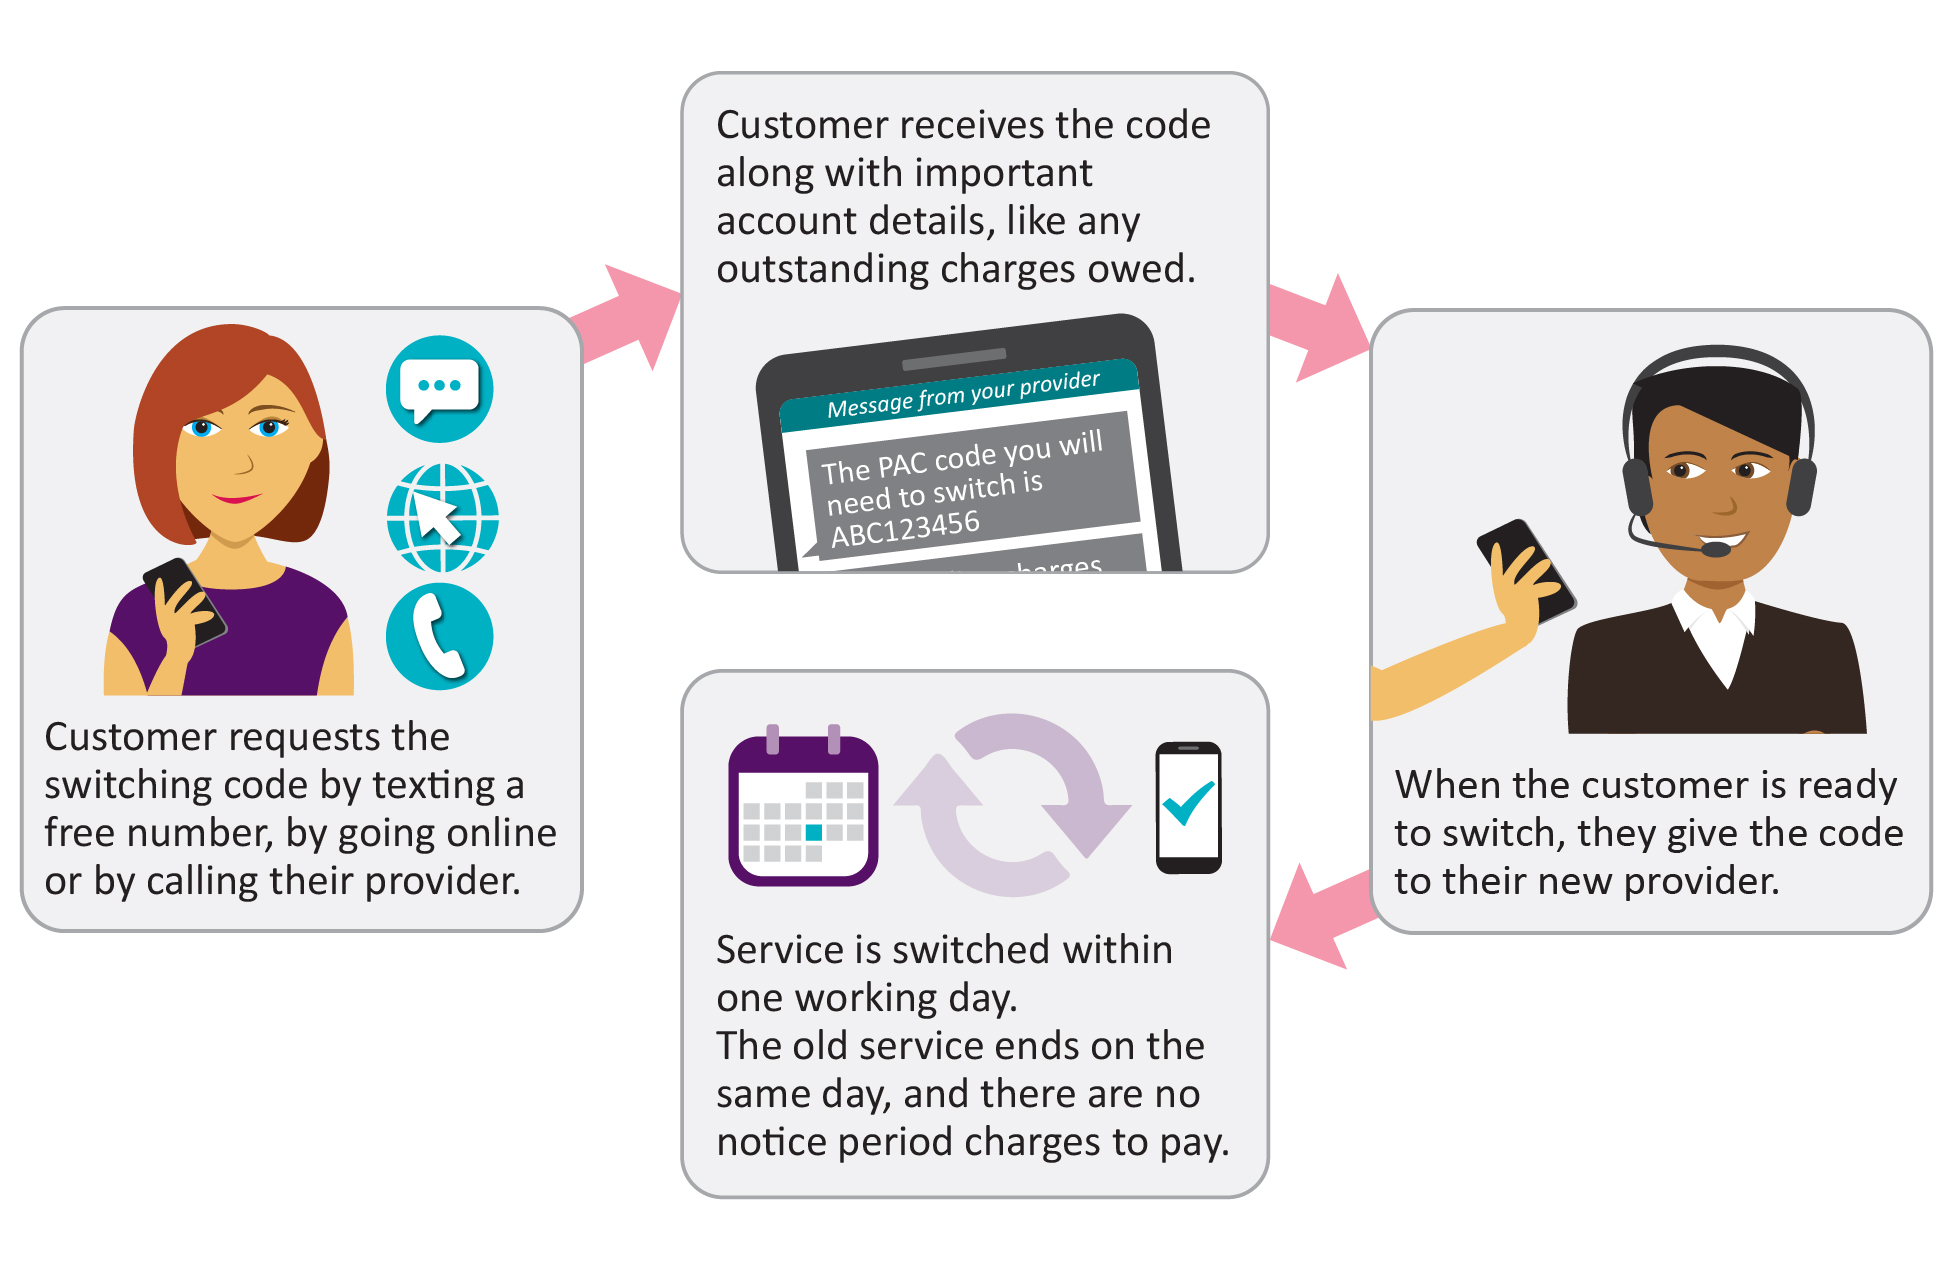 Image showing steps to switch via text. Step 1: Customer requests the switching code by texting a free number. Step 2: Customer receives the code along with important account details, like any outstanding charges owed. Step 3: When the customer is ready to switch, they give the code their new provider. Step 4: Service is switched within one working day. The old service ends on the same day, and there are no notice period charges to pay.